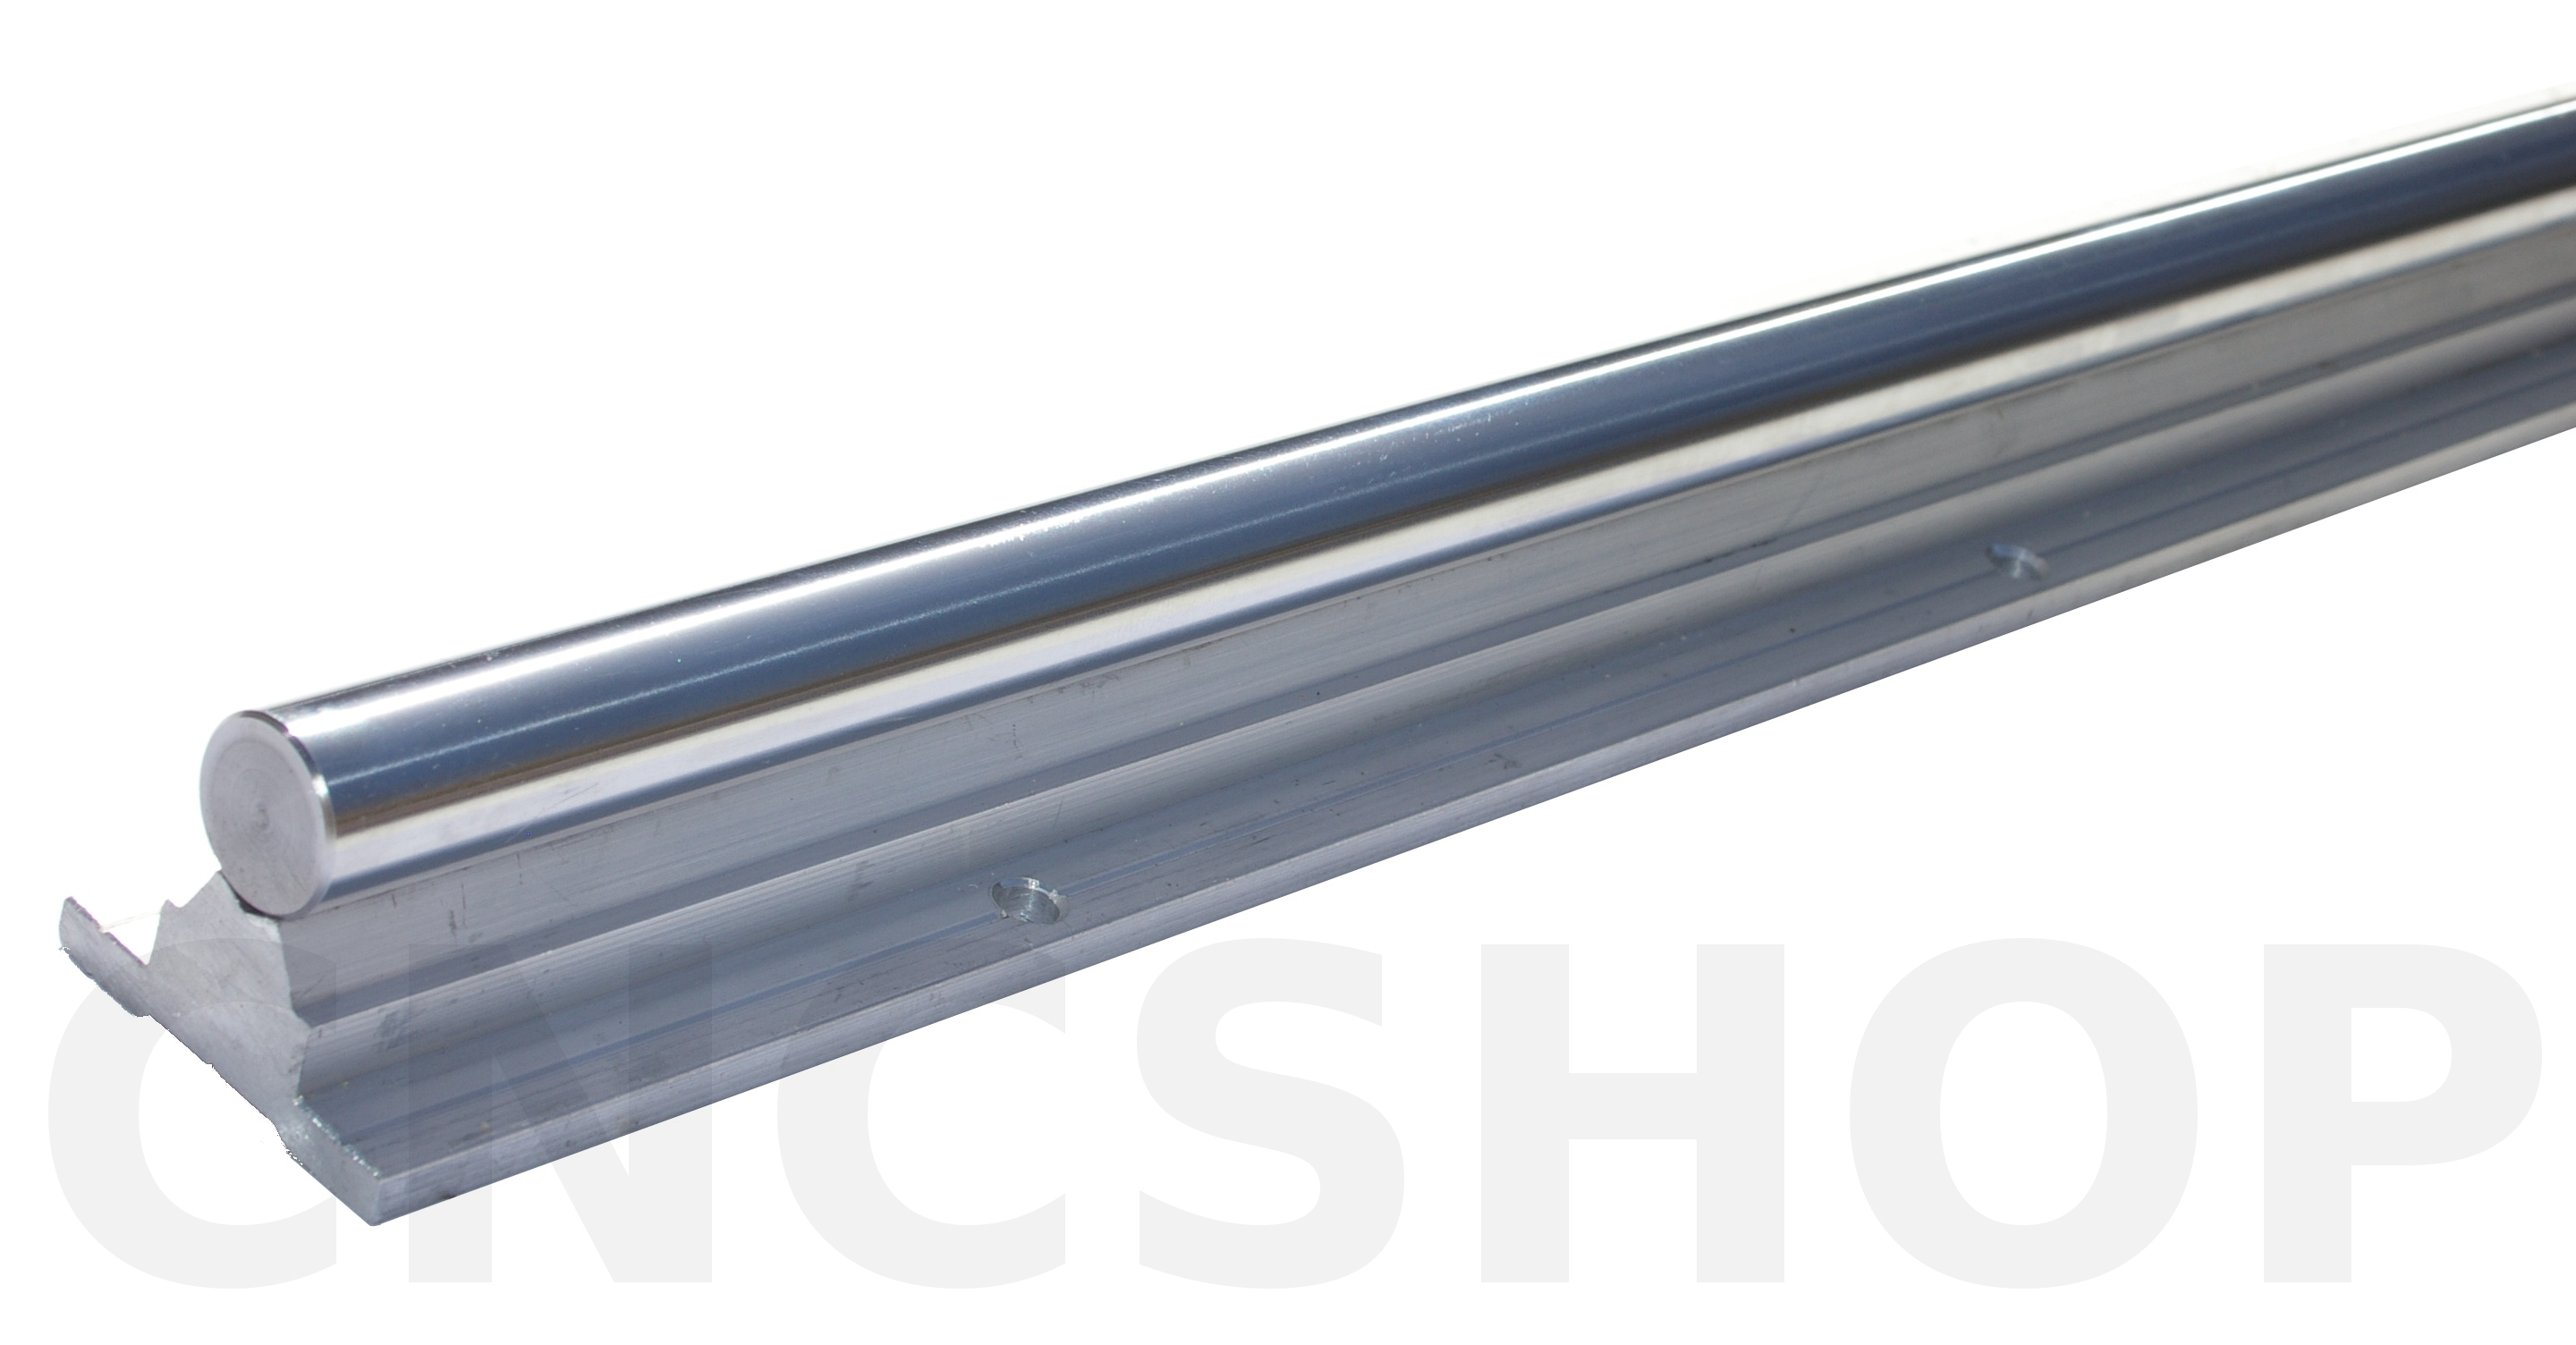 SBR16-700mm FULLY SUPPORTED LINEAR RAIL